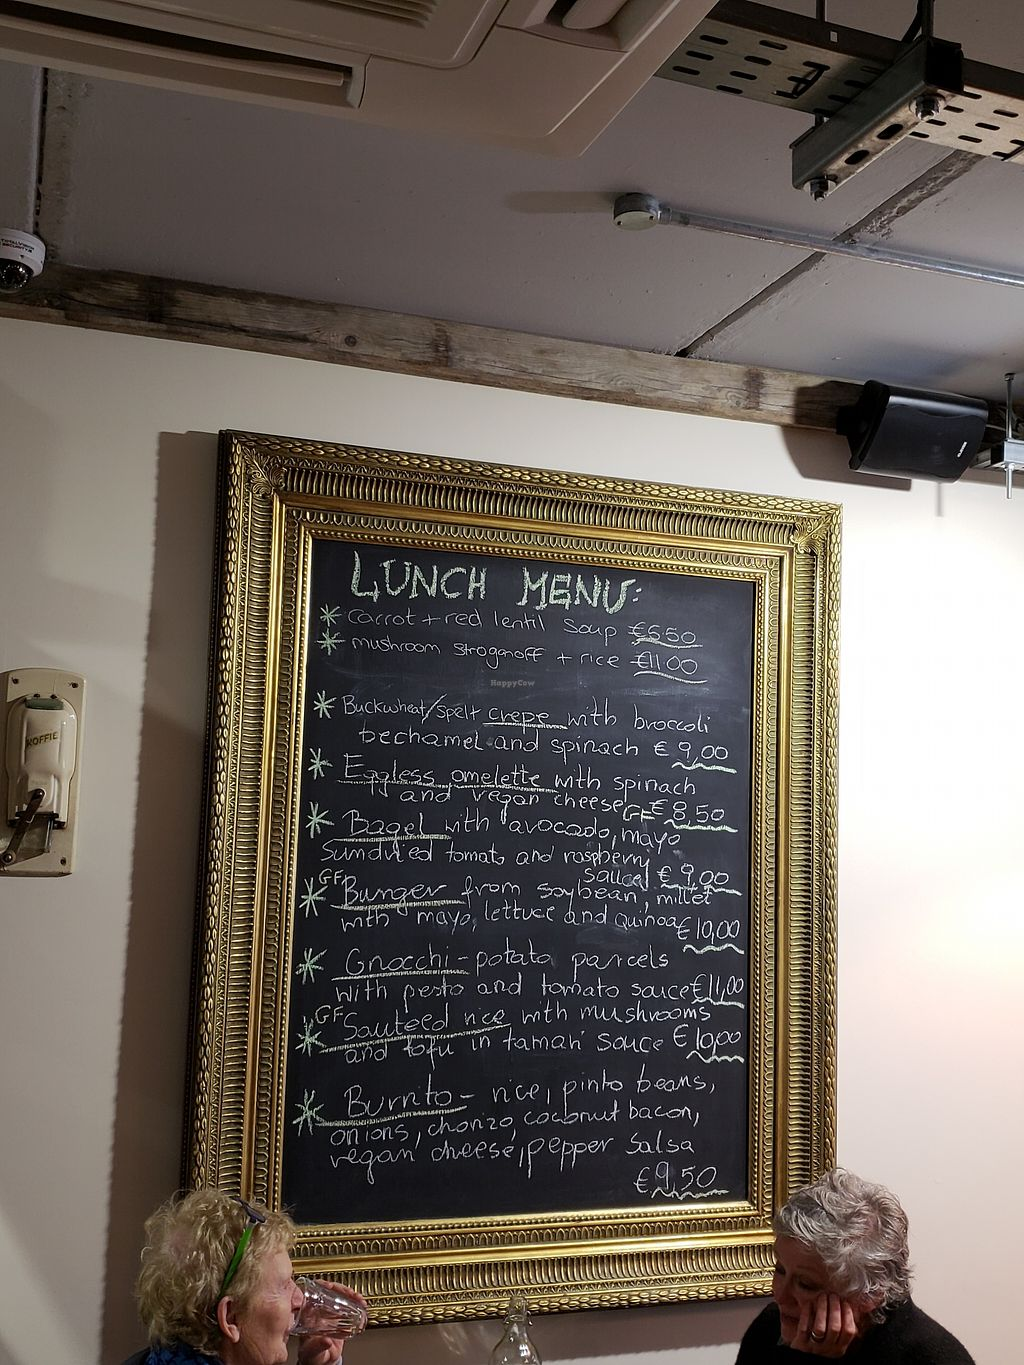 """Photo of Peckish Cafe  by <a href=""""/members/profile/reuvenk"""">reuvenk</a> <br/>Lunch menu at the Peckish cafe, Ennis, Ireland <br/> April 17, 2018  - <a href='/contact/abuse/image/78253/387082'>Report</a>"""